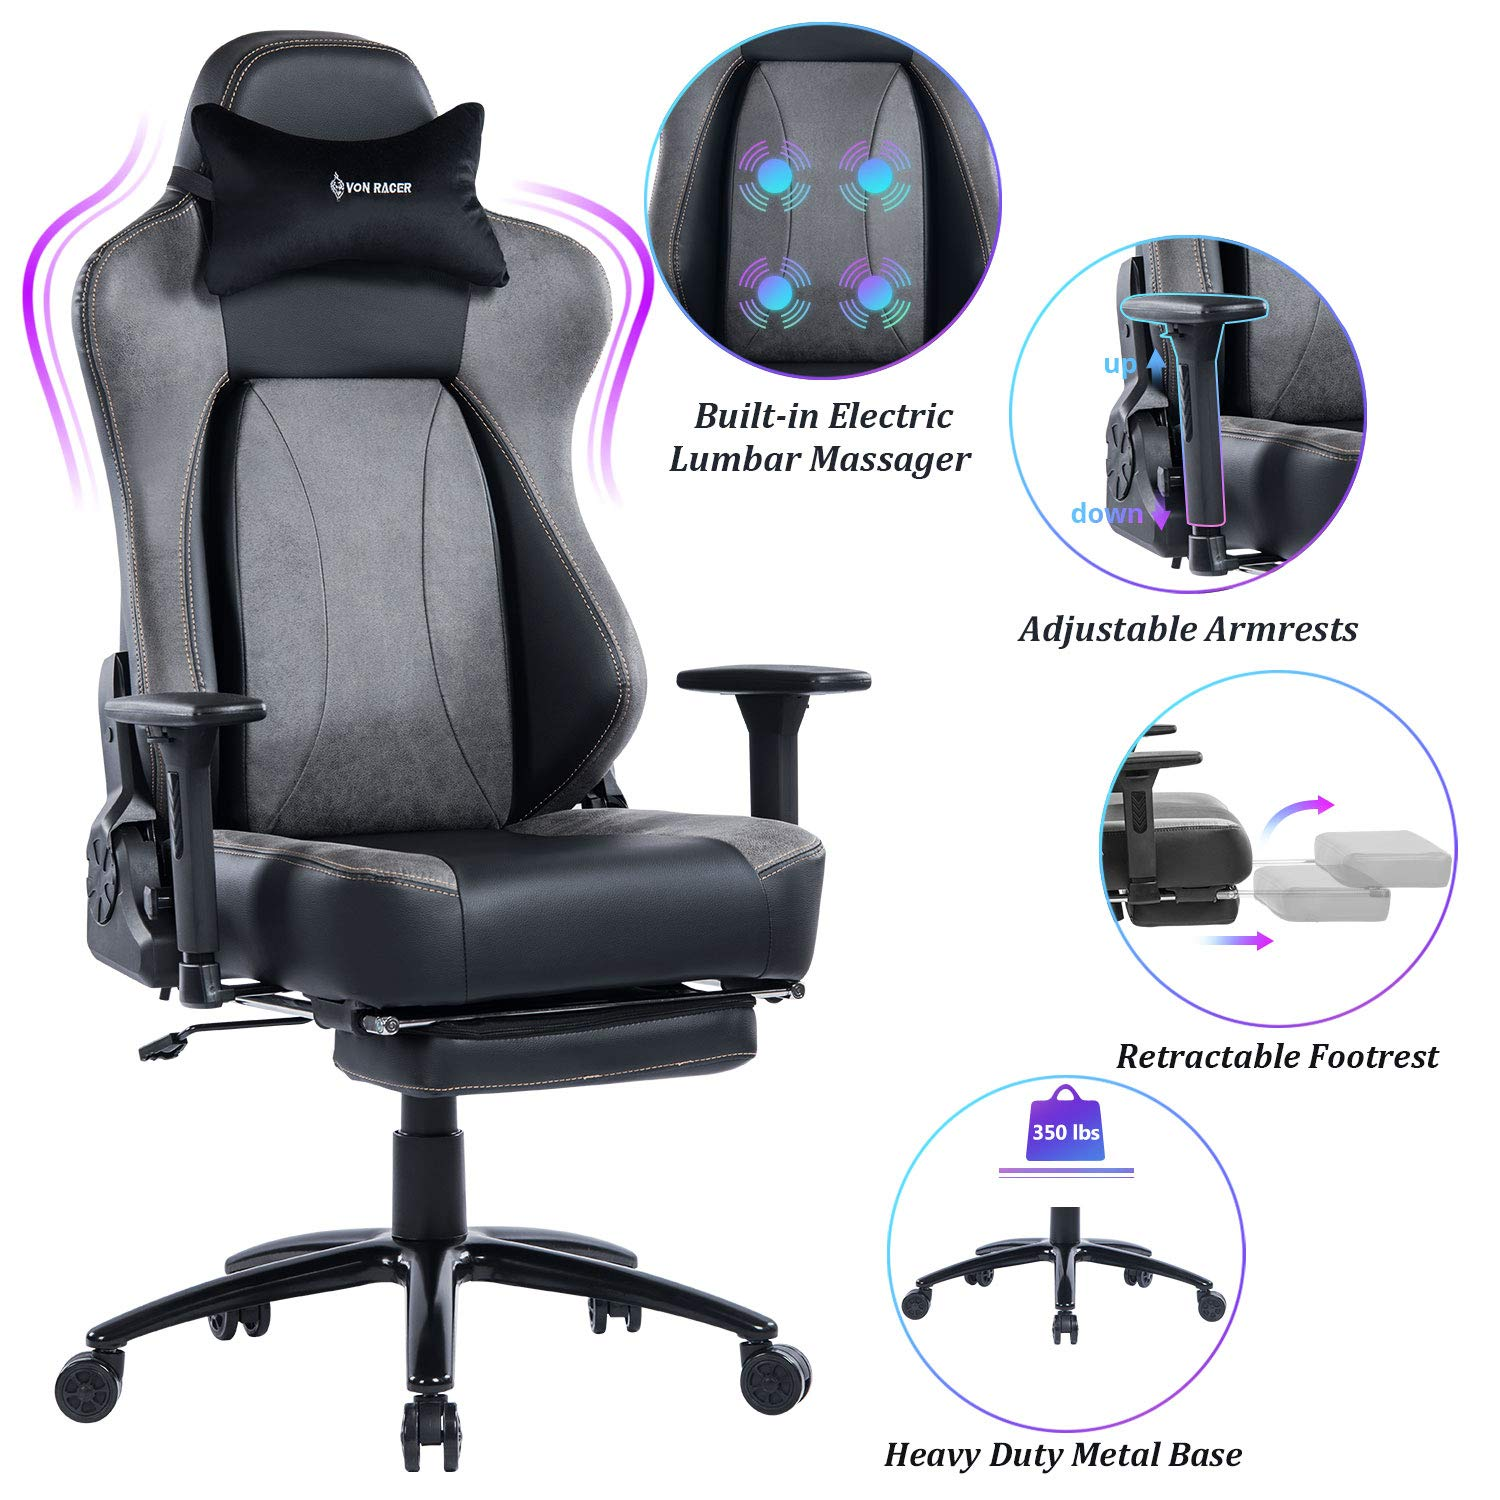 VON RACER Big Tall 350lbs Massage Gaming Chair with Retractable Footrest – Adjustable Back Angle and Arms Ergonomic High-Back Leather Racing Executive Computer Desk Office Chair Metal Base, Gray